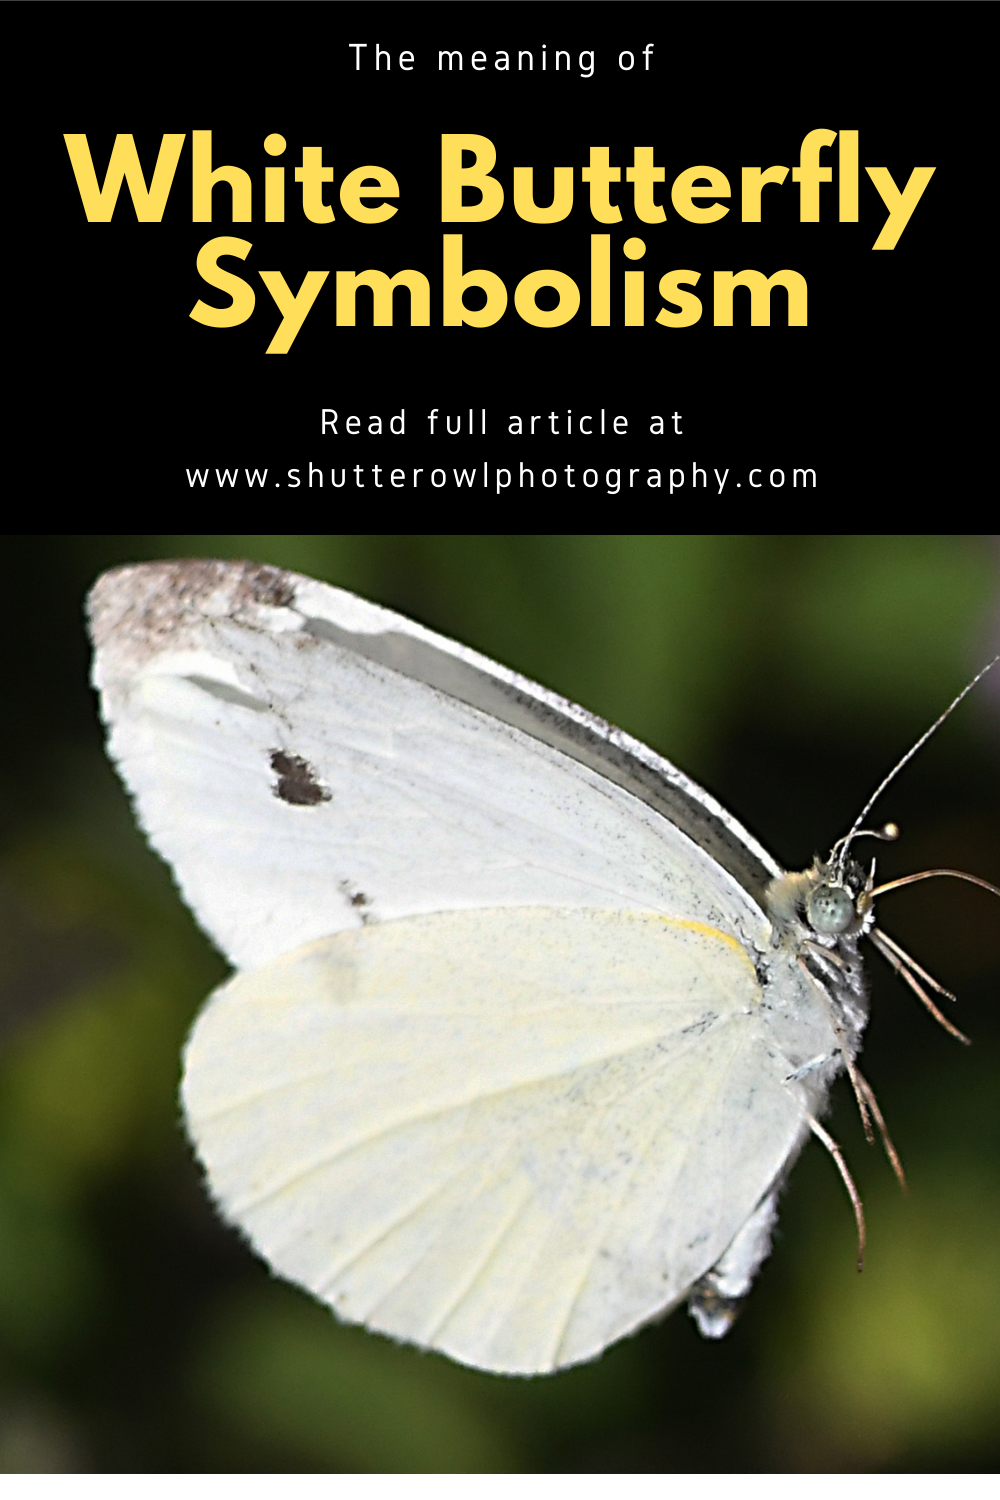 white butterfly symbolism meaning